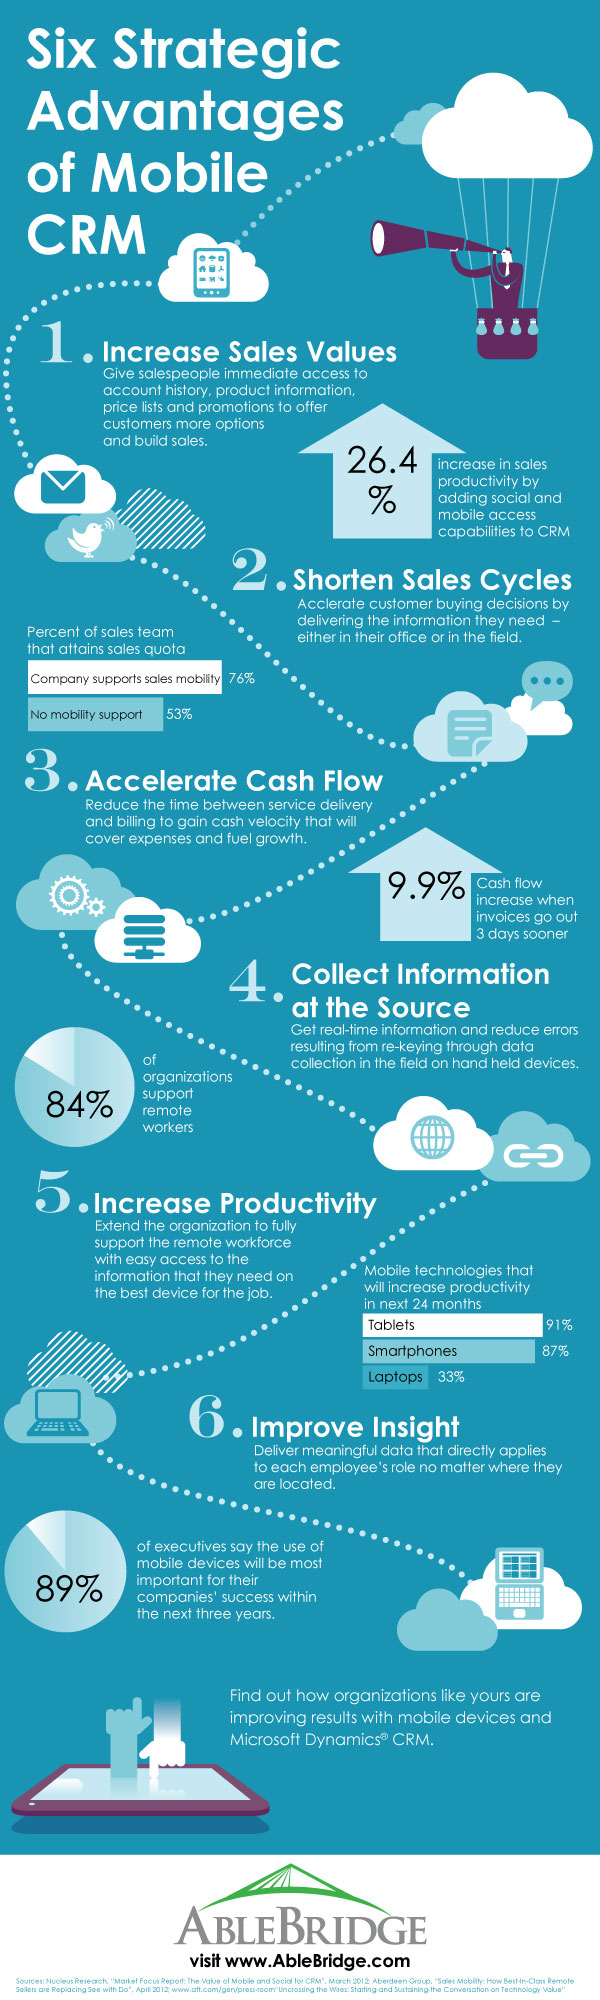 CRM_Mobile_Infographic_finalEDITED